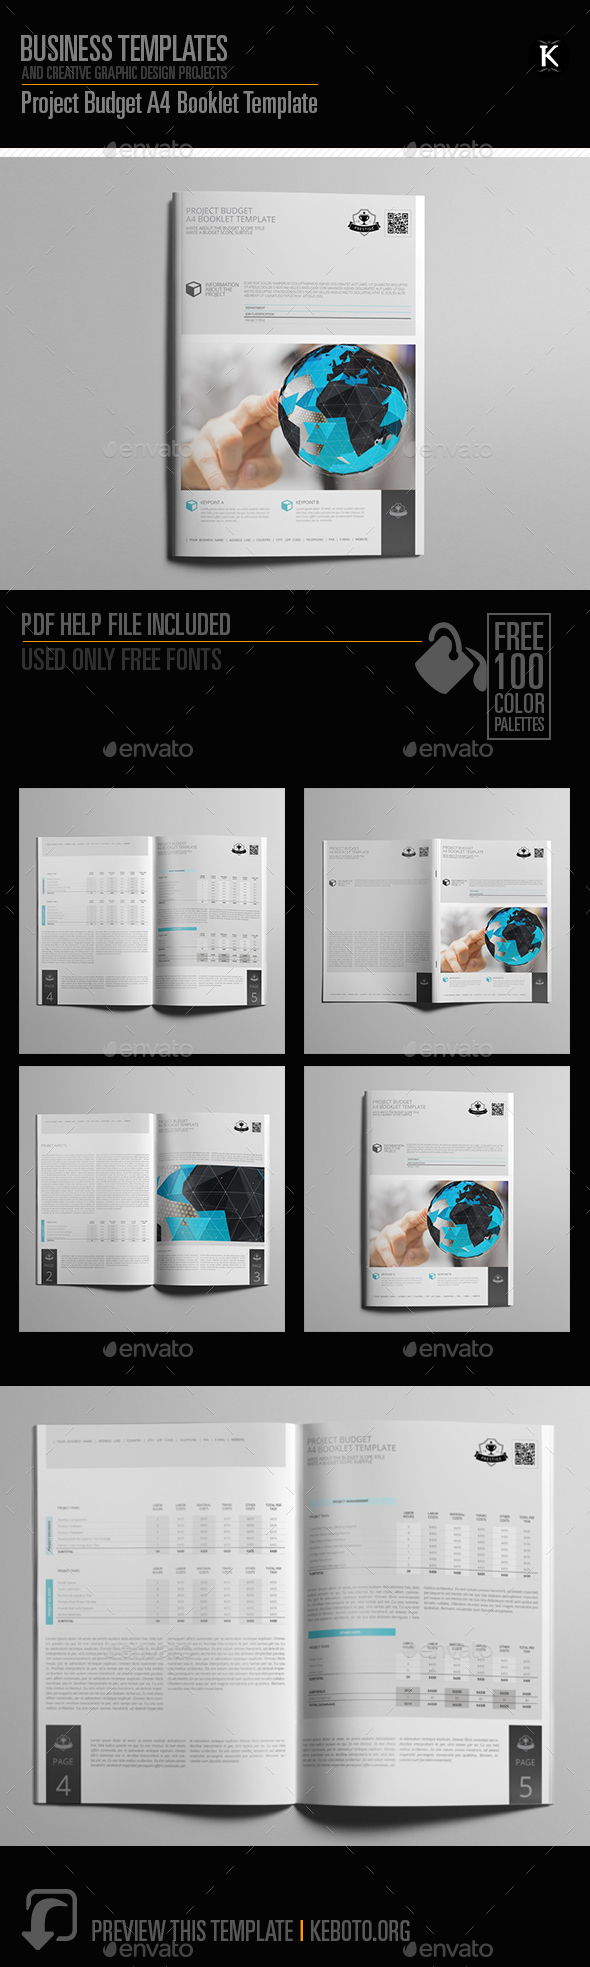 Project Budget A Booklet Template By Keboto GraphicRiver - Brochure website templates